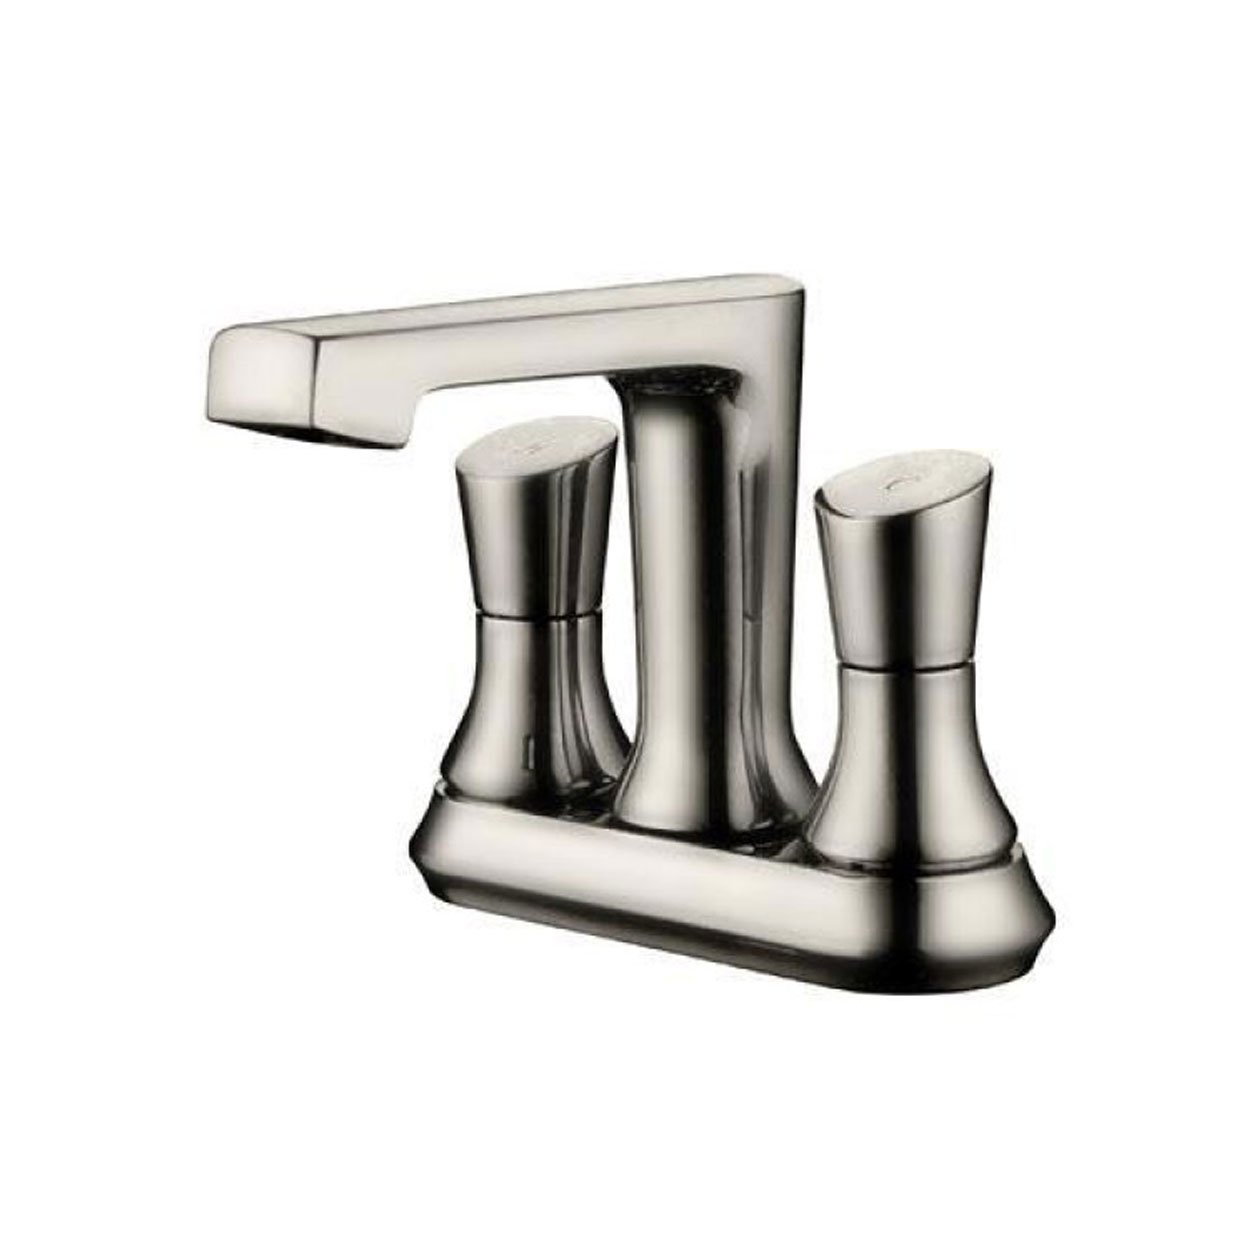 Yosemite Home Decor YP9312-BN Two Handle Centerset Lavatory Faucet, Brush Nickel